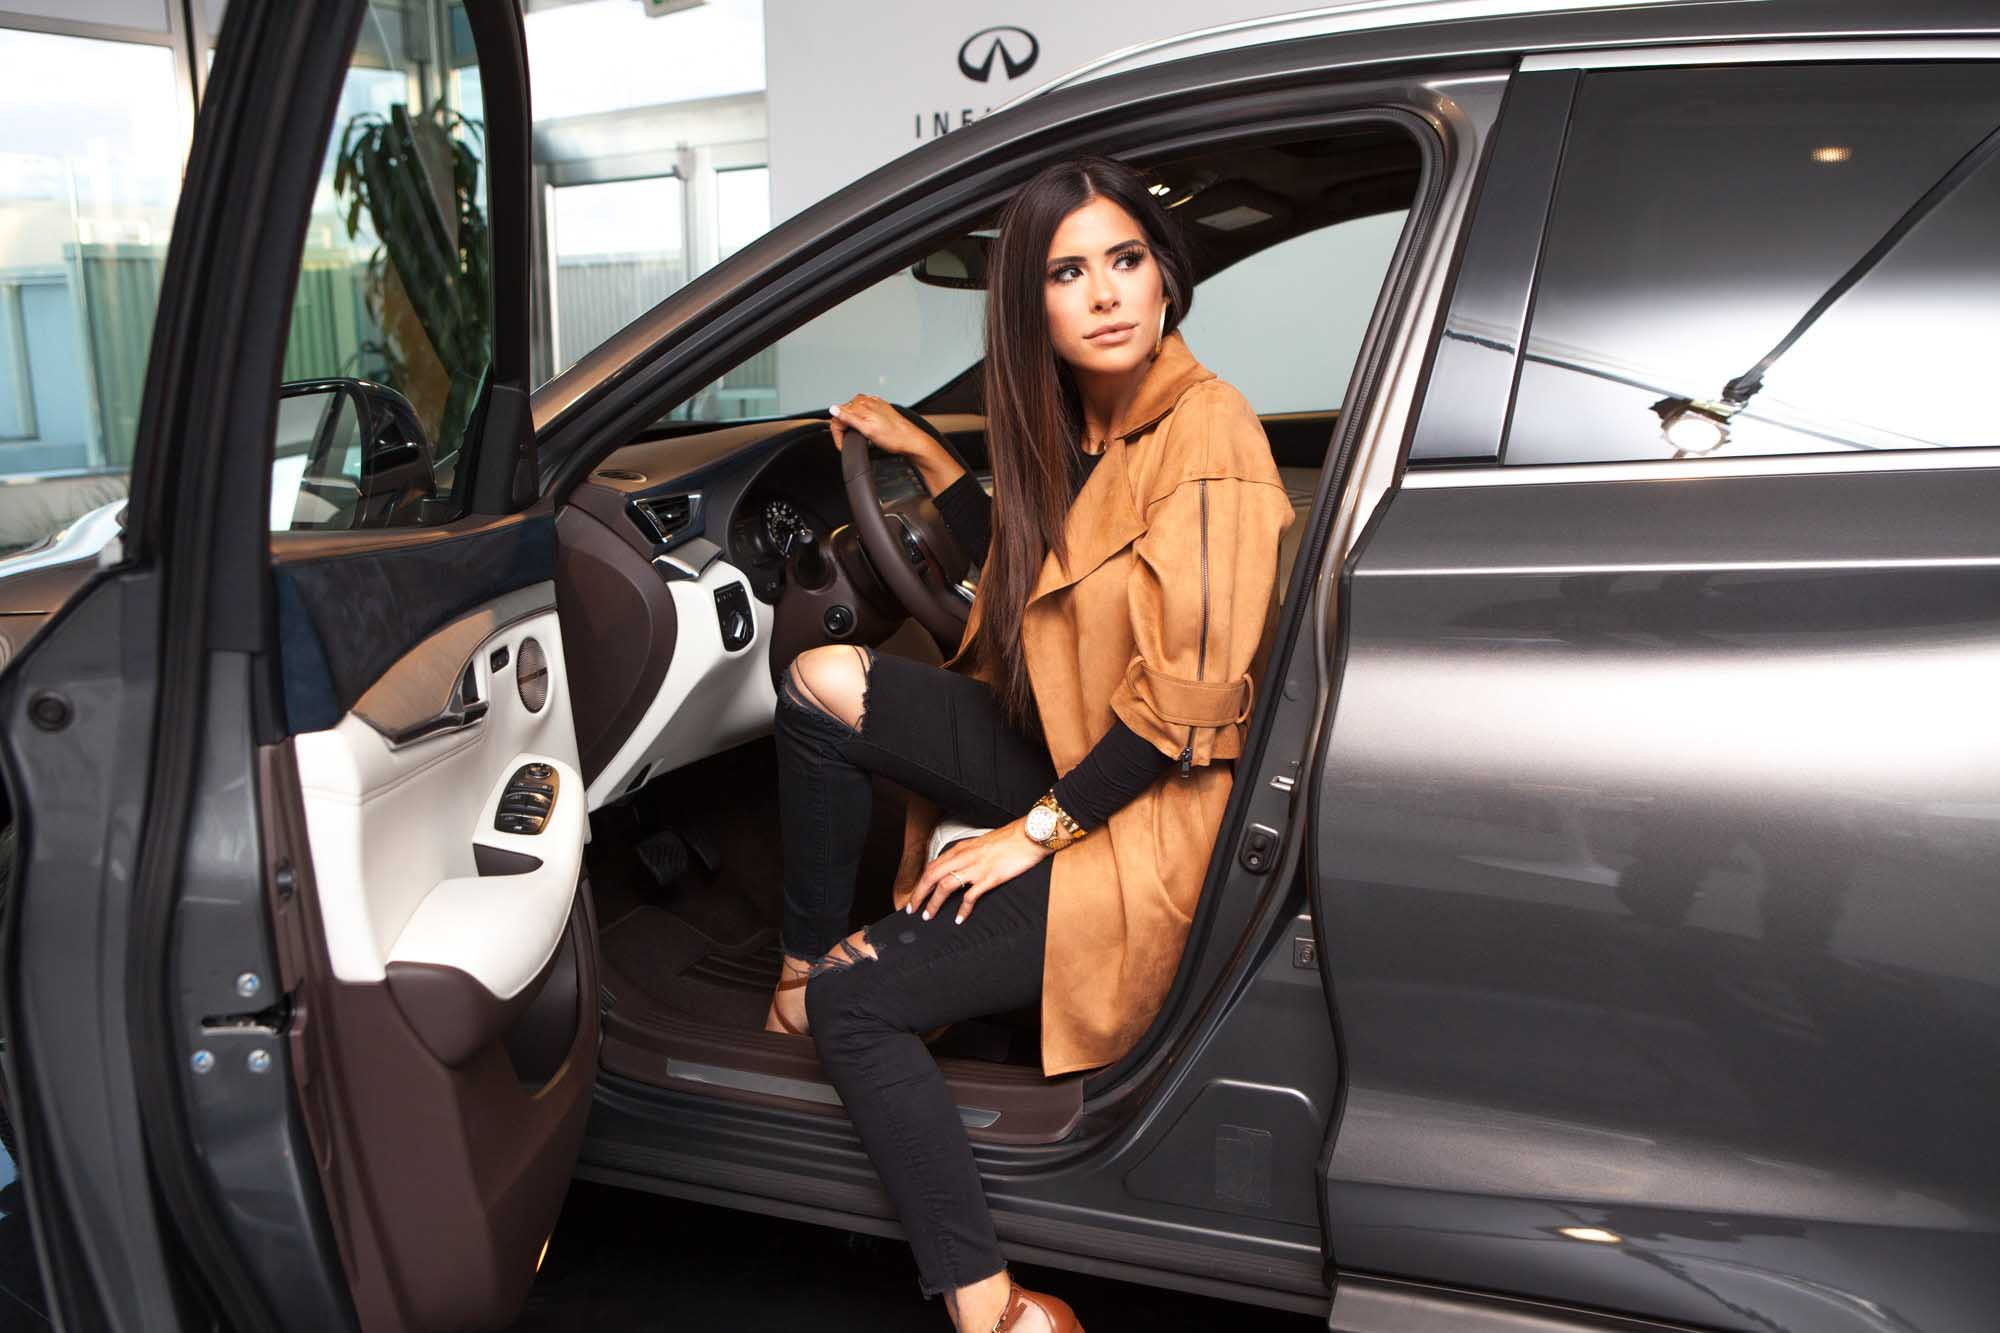 Emily Ann Gemma testing Infiniti QX-50 in showroom | Fashion Photography | Car Photography | Commercial Photography | @emilyanngemma | THE SWEETEST THING | @thegemmagang Shot in Los Angles, California for Crispin Porter + Bogusky